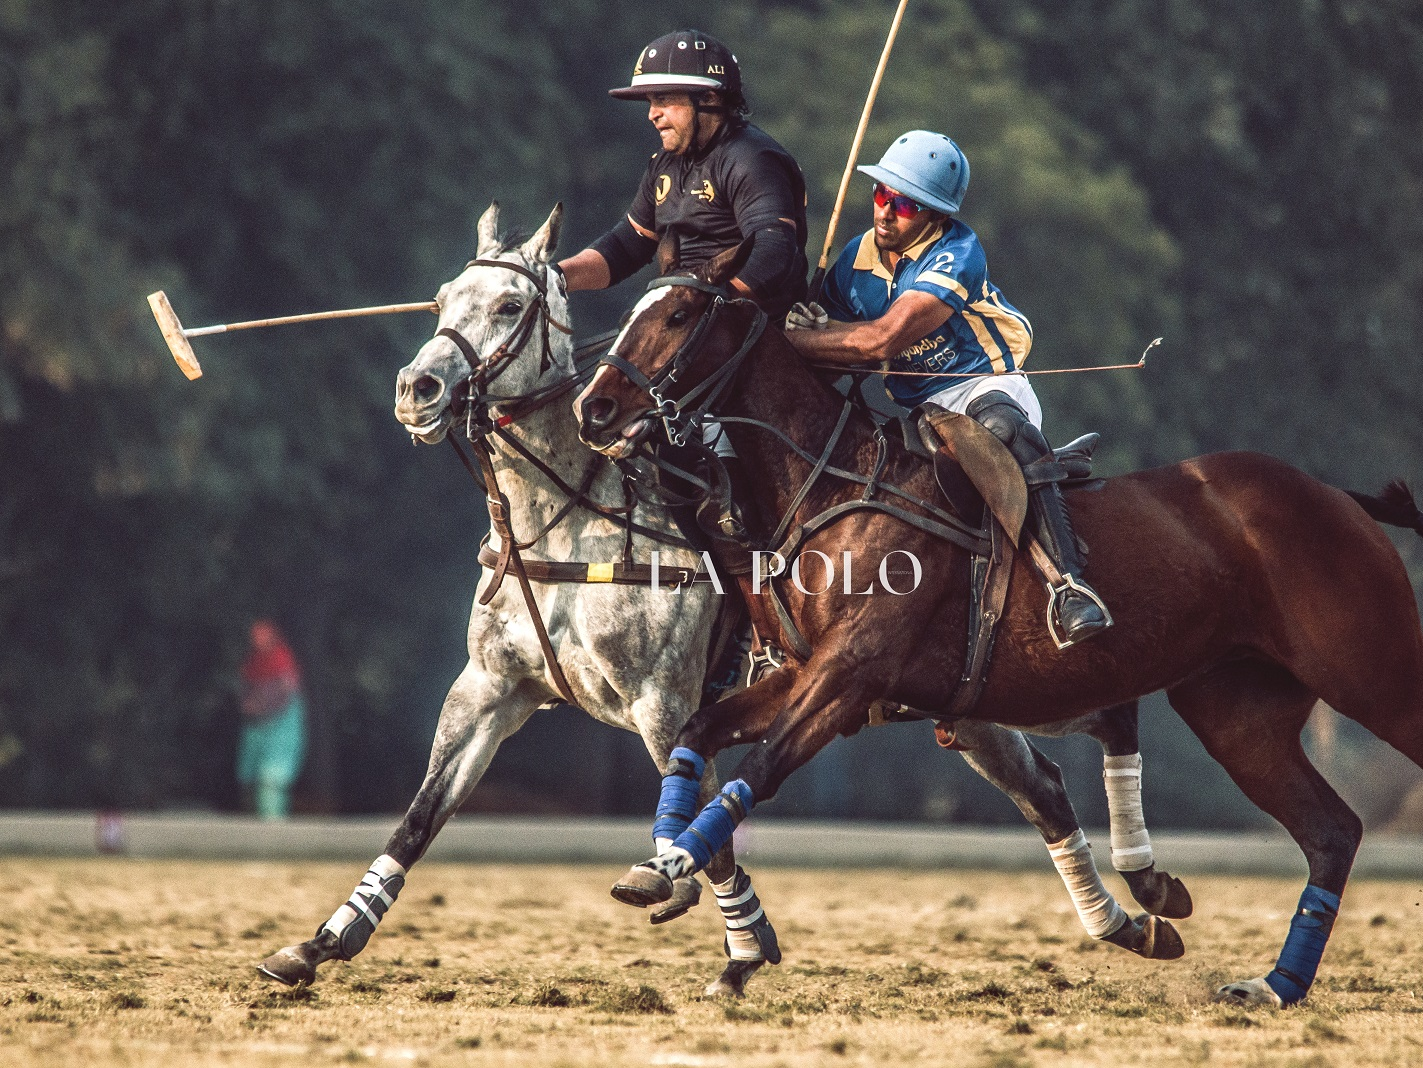 polo_players_in_india_lapolo